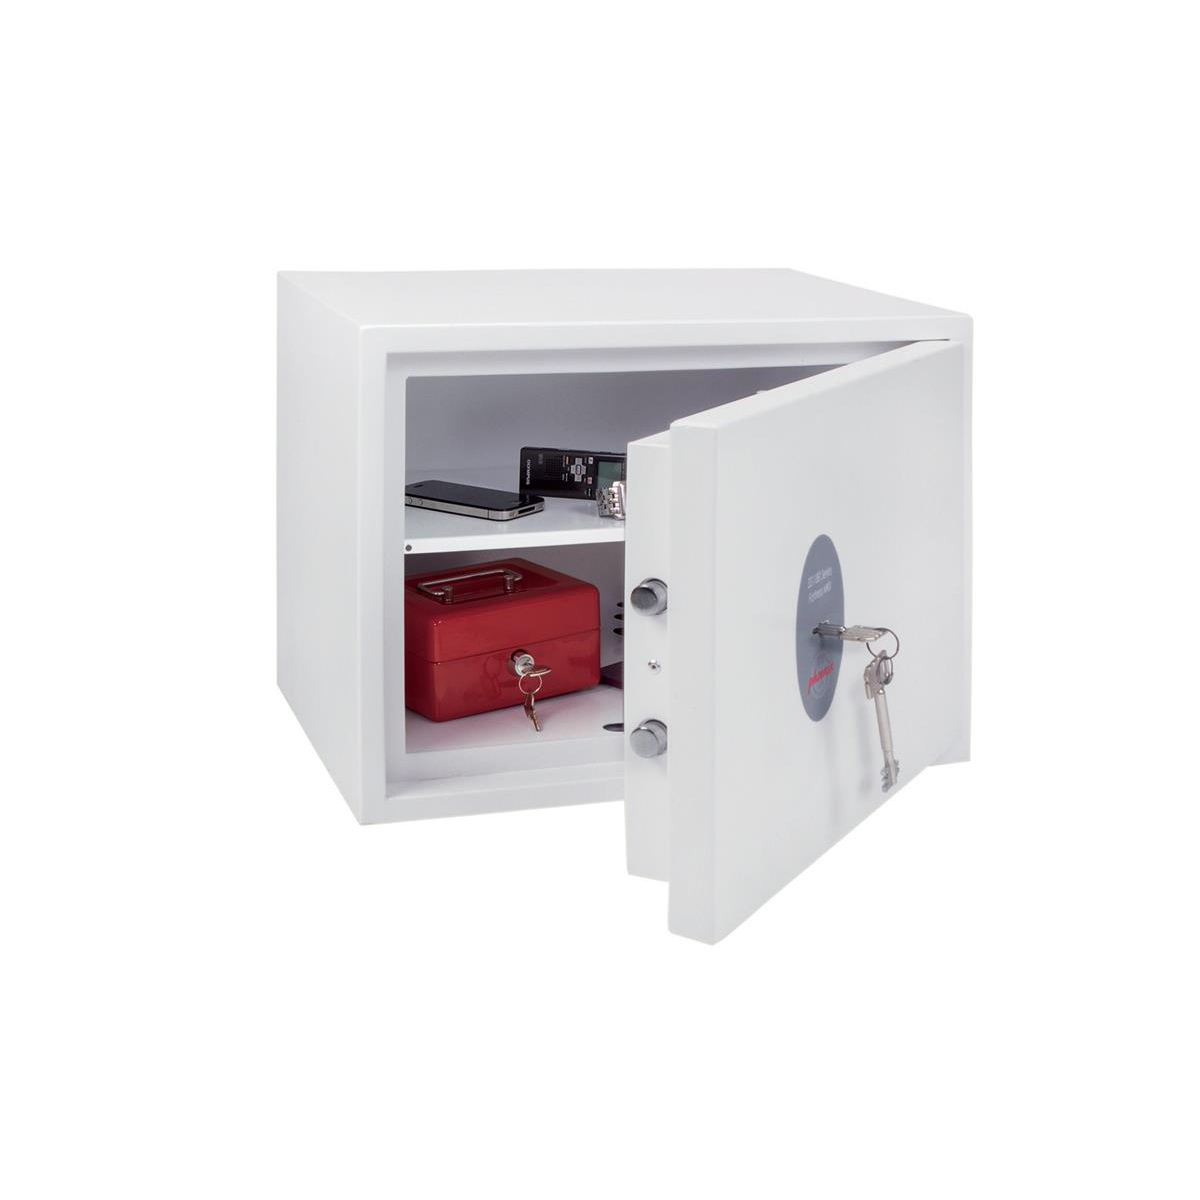 Key Store Phoenix Fortress High Security Safe Key Lock 24L Capacity 25kg W450xD350xH350mm Ref SS1182K